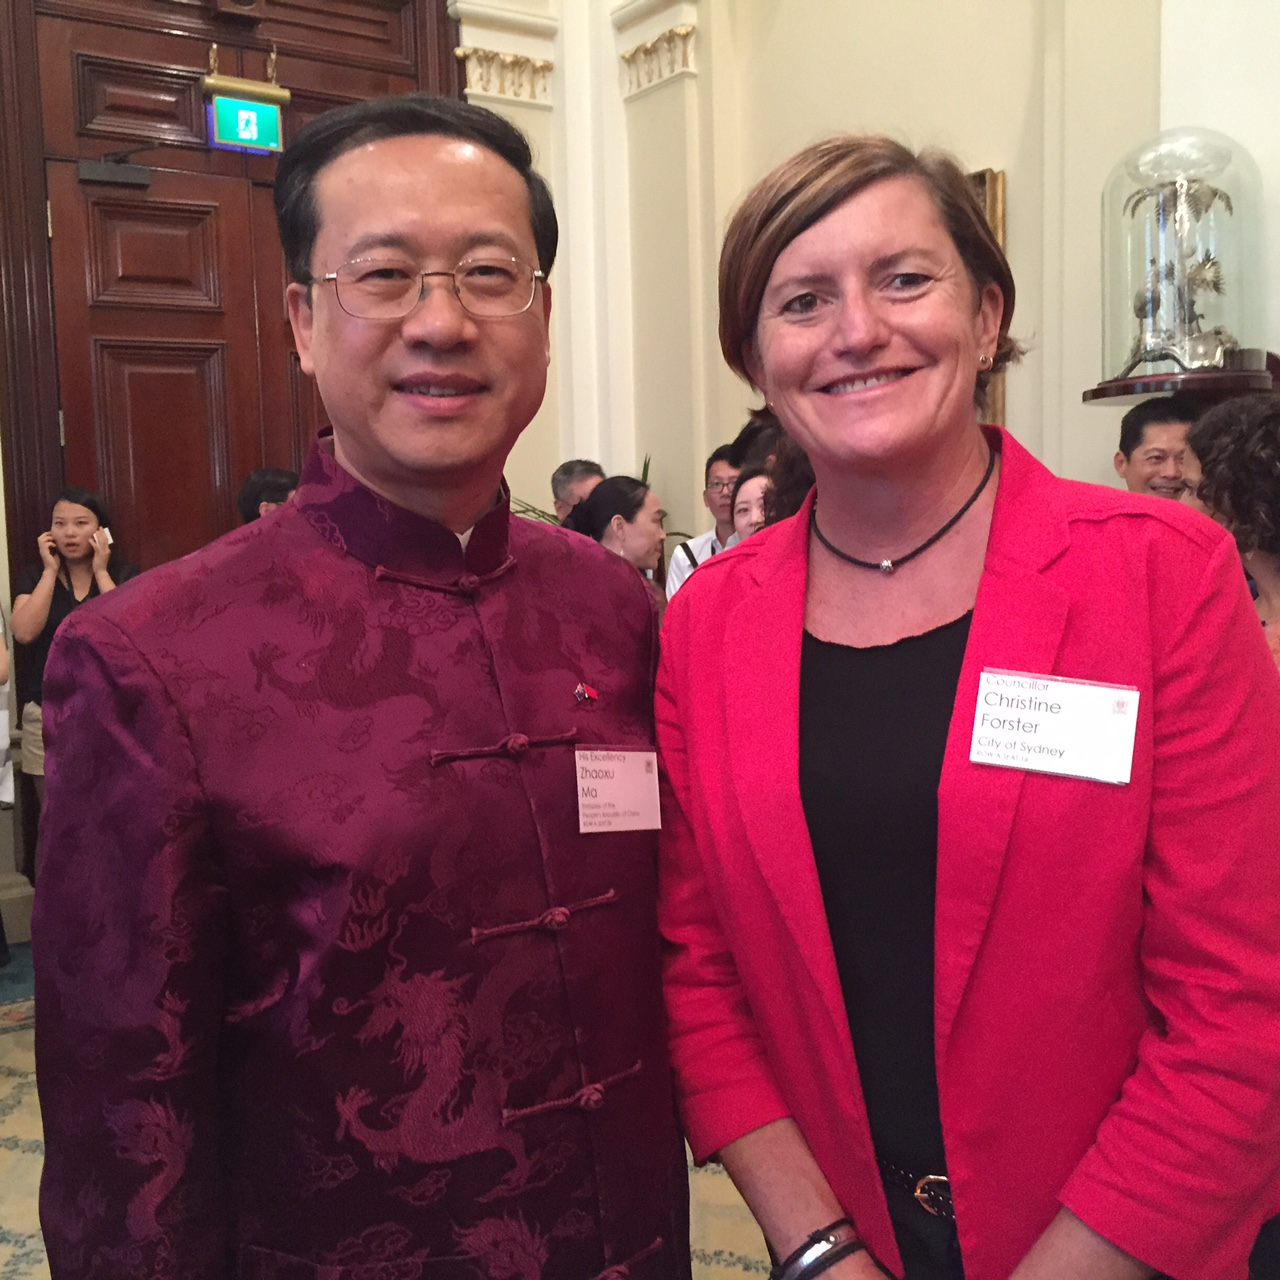 Christine Forster & His Excellency Zhaoxu Ma @ CNY Reception 22-02-15